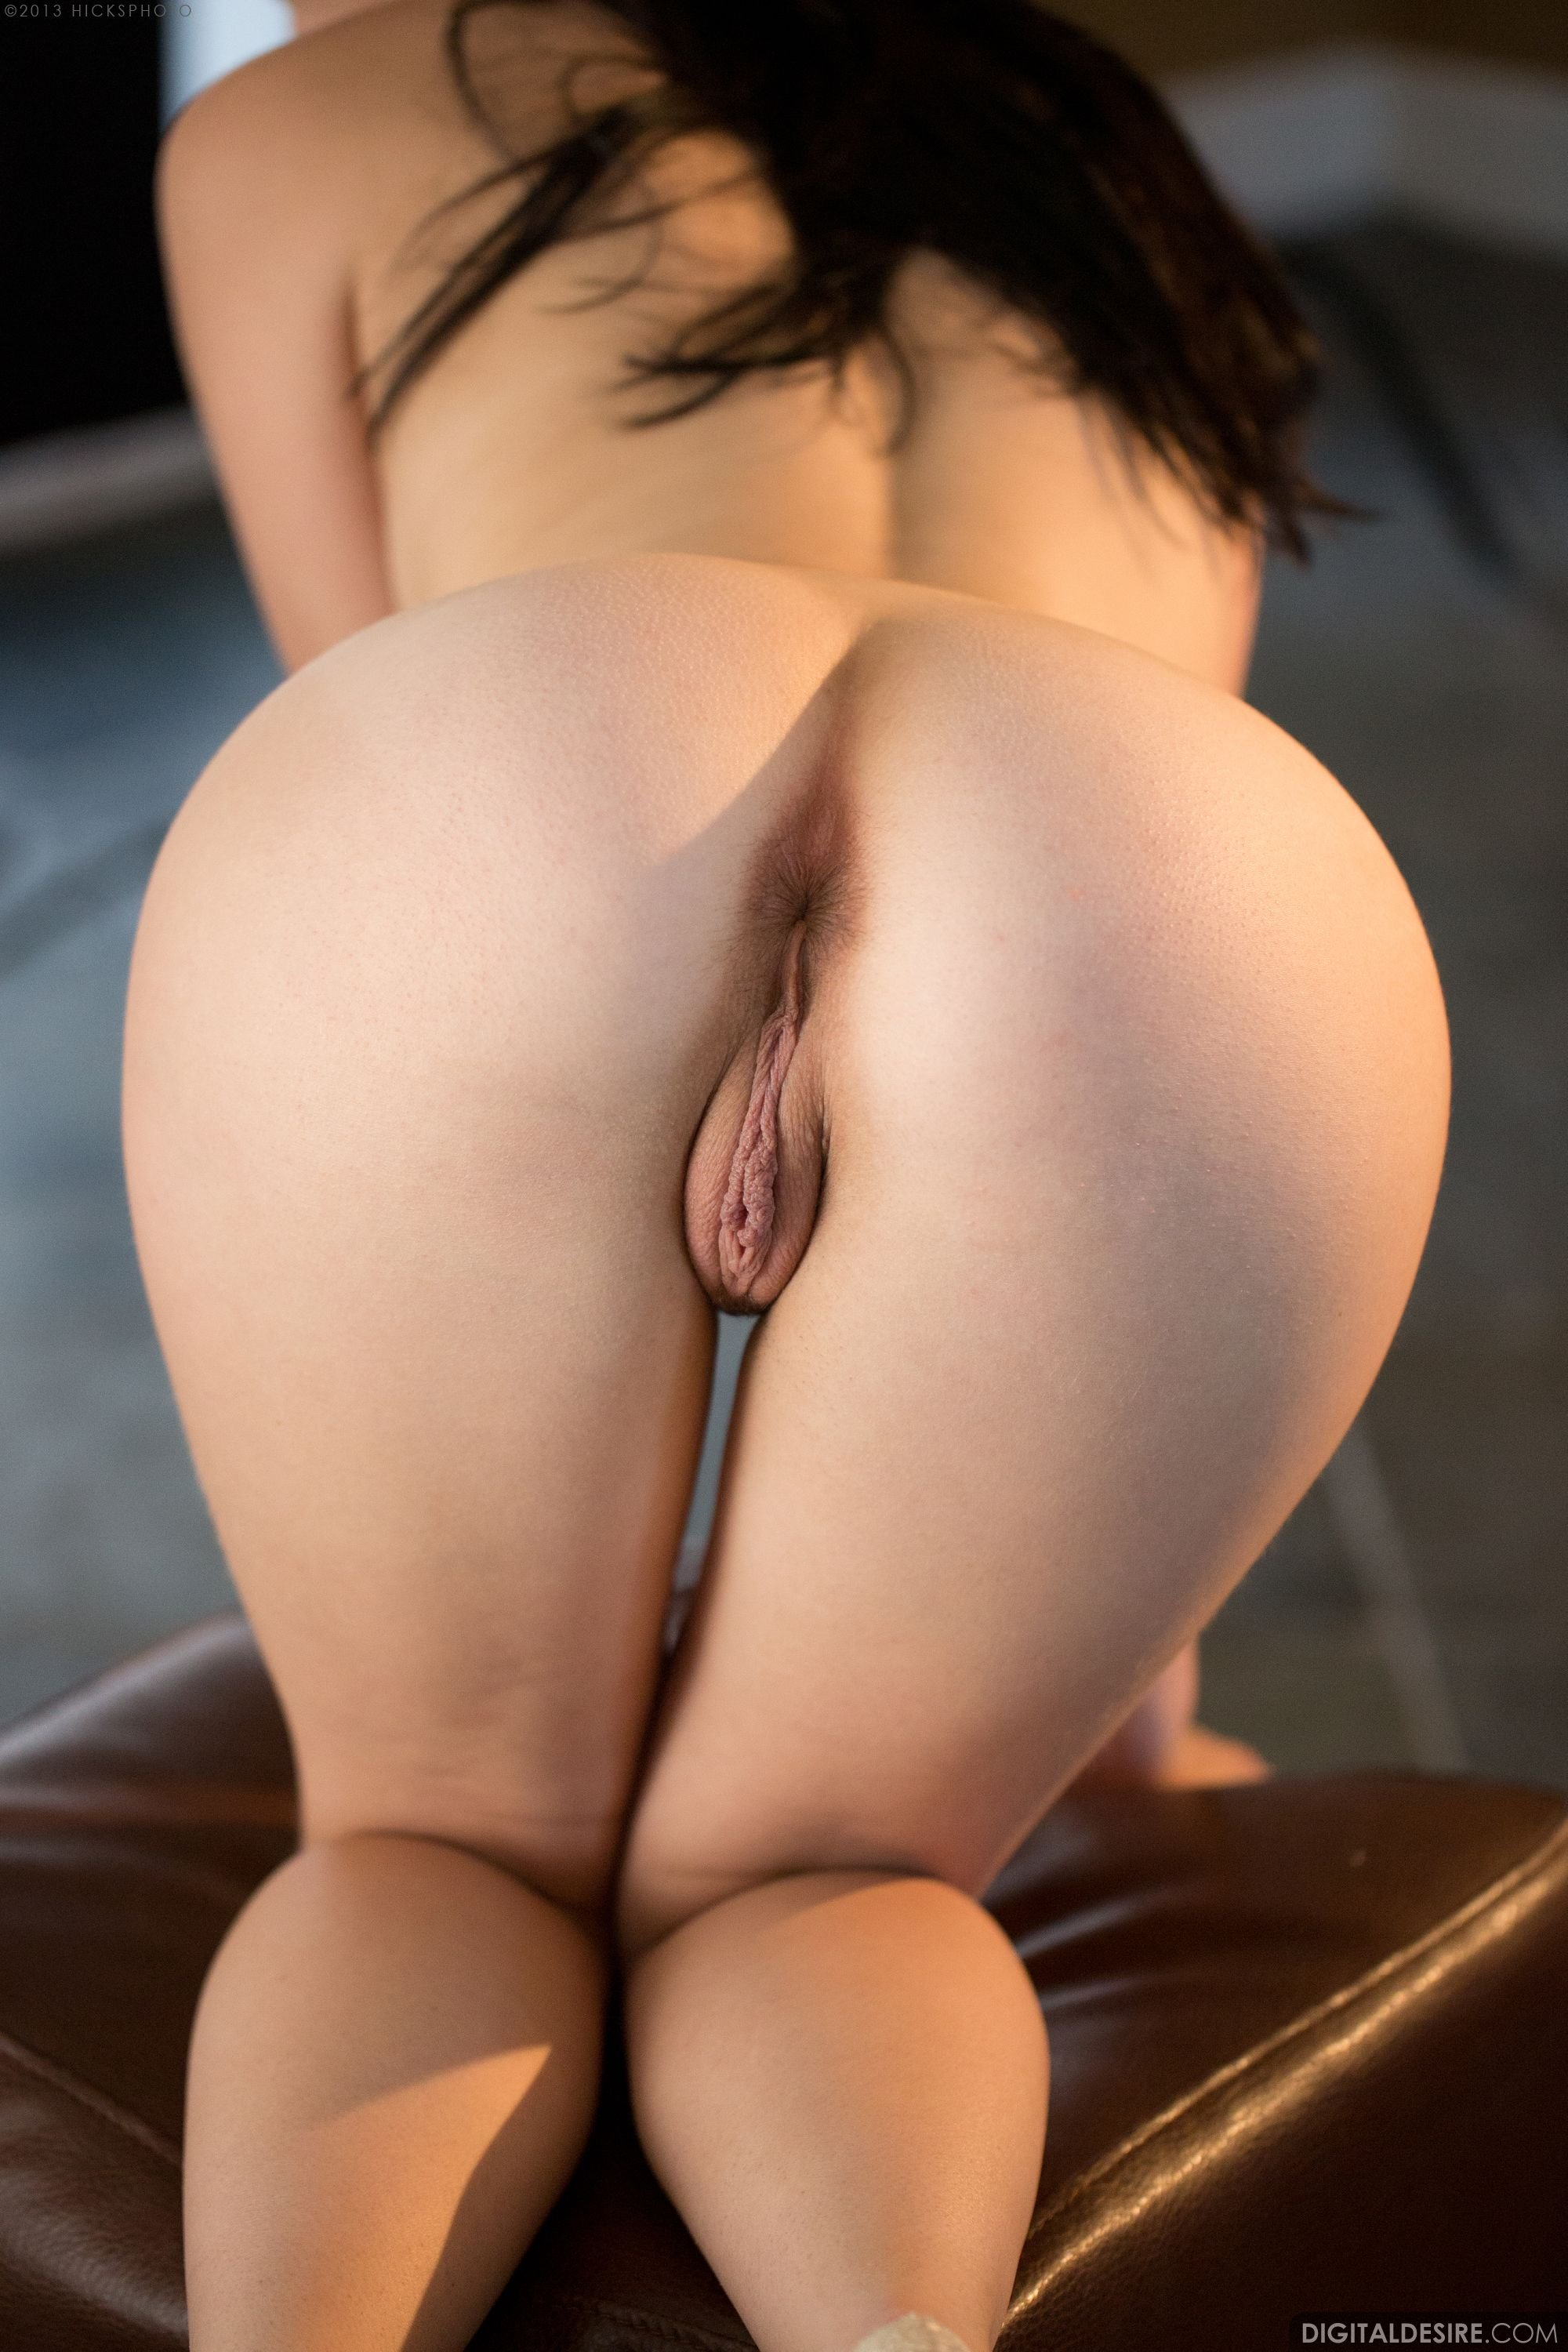 girls-pussy-from-the-back